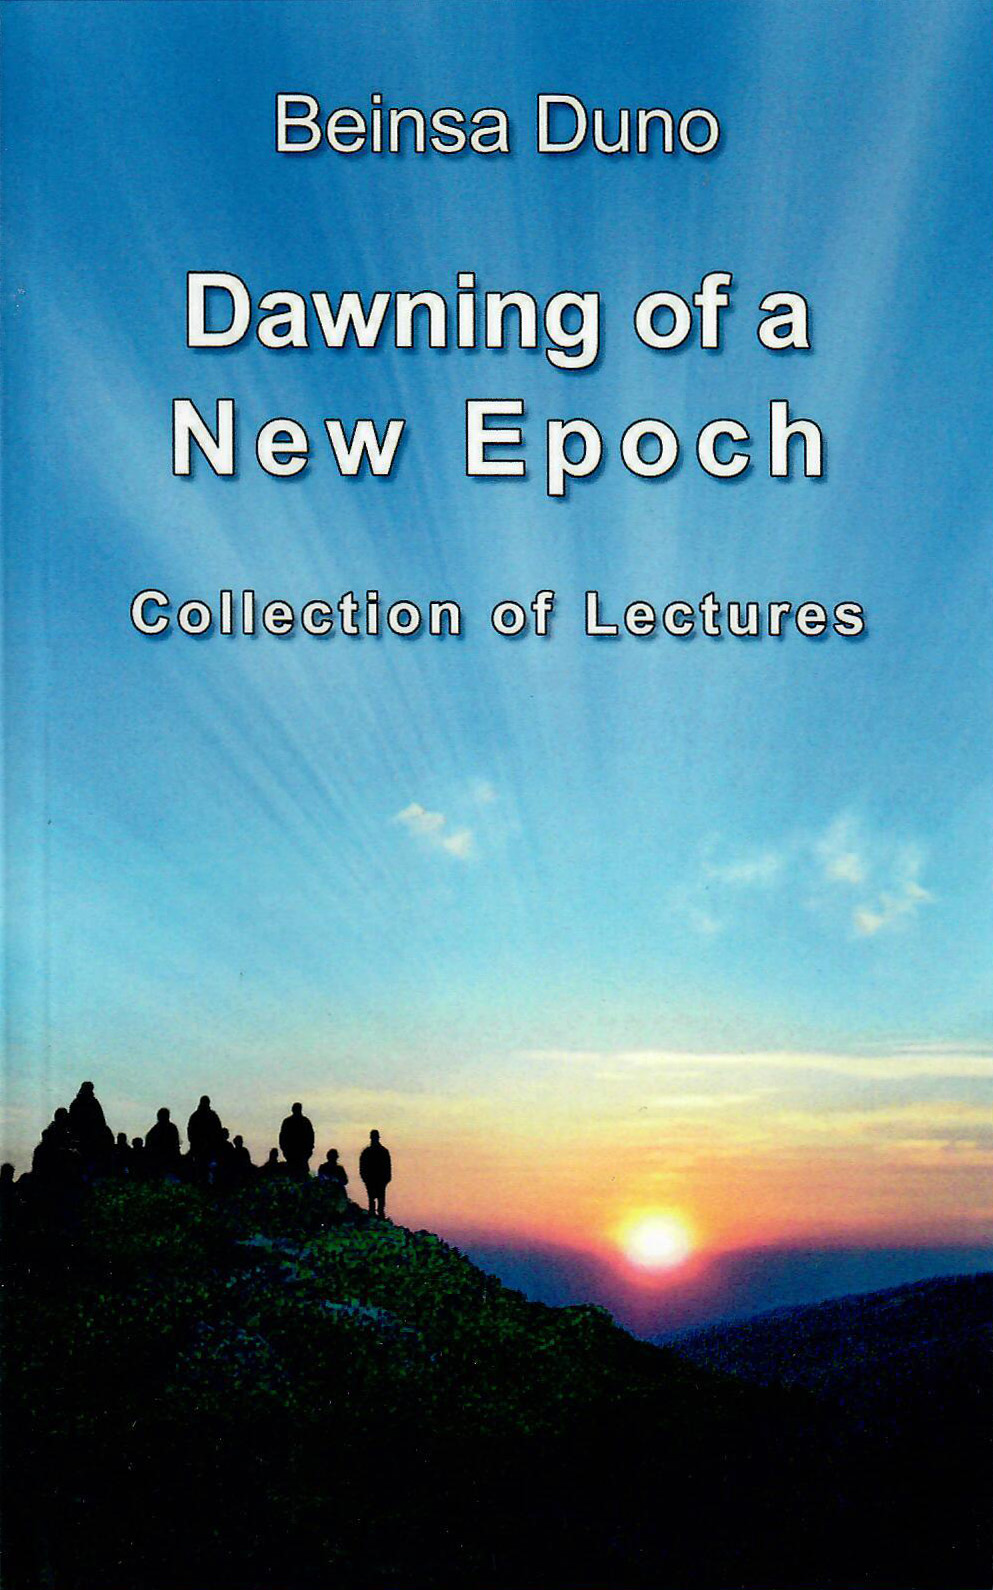 Dawning of a New Epoch